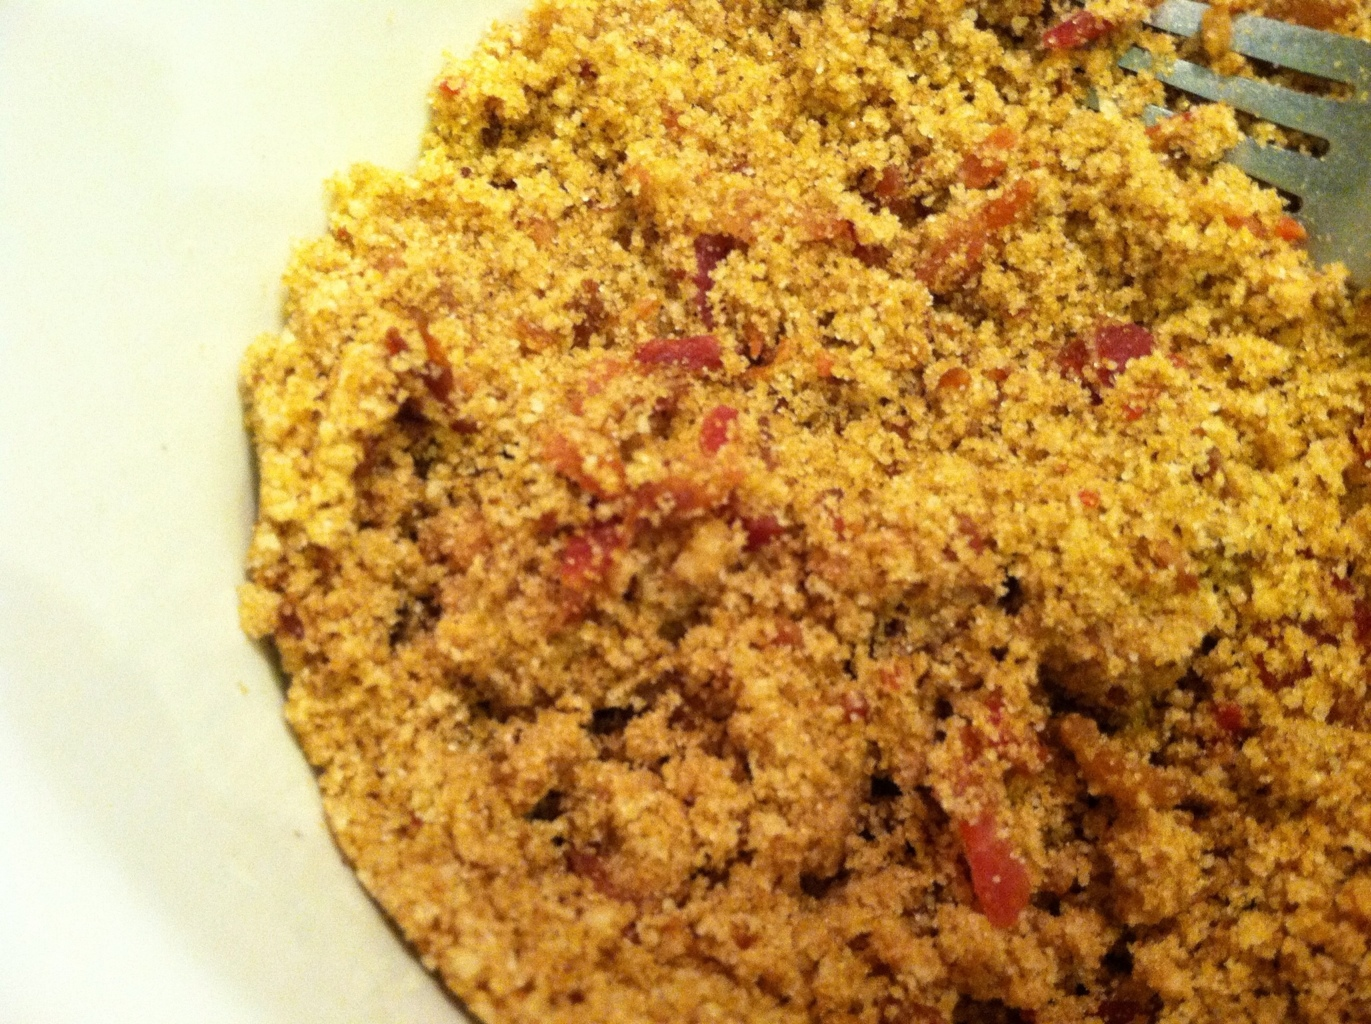 Bacon mixed with streusel topping